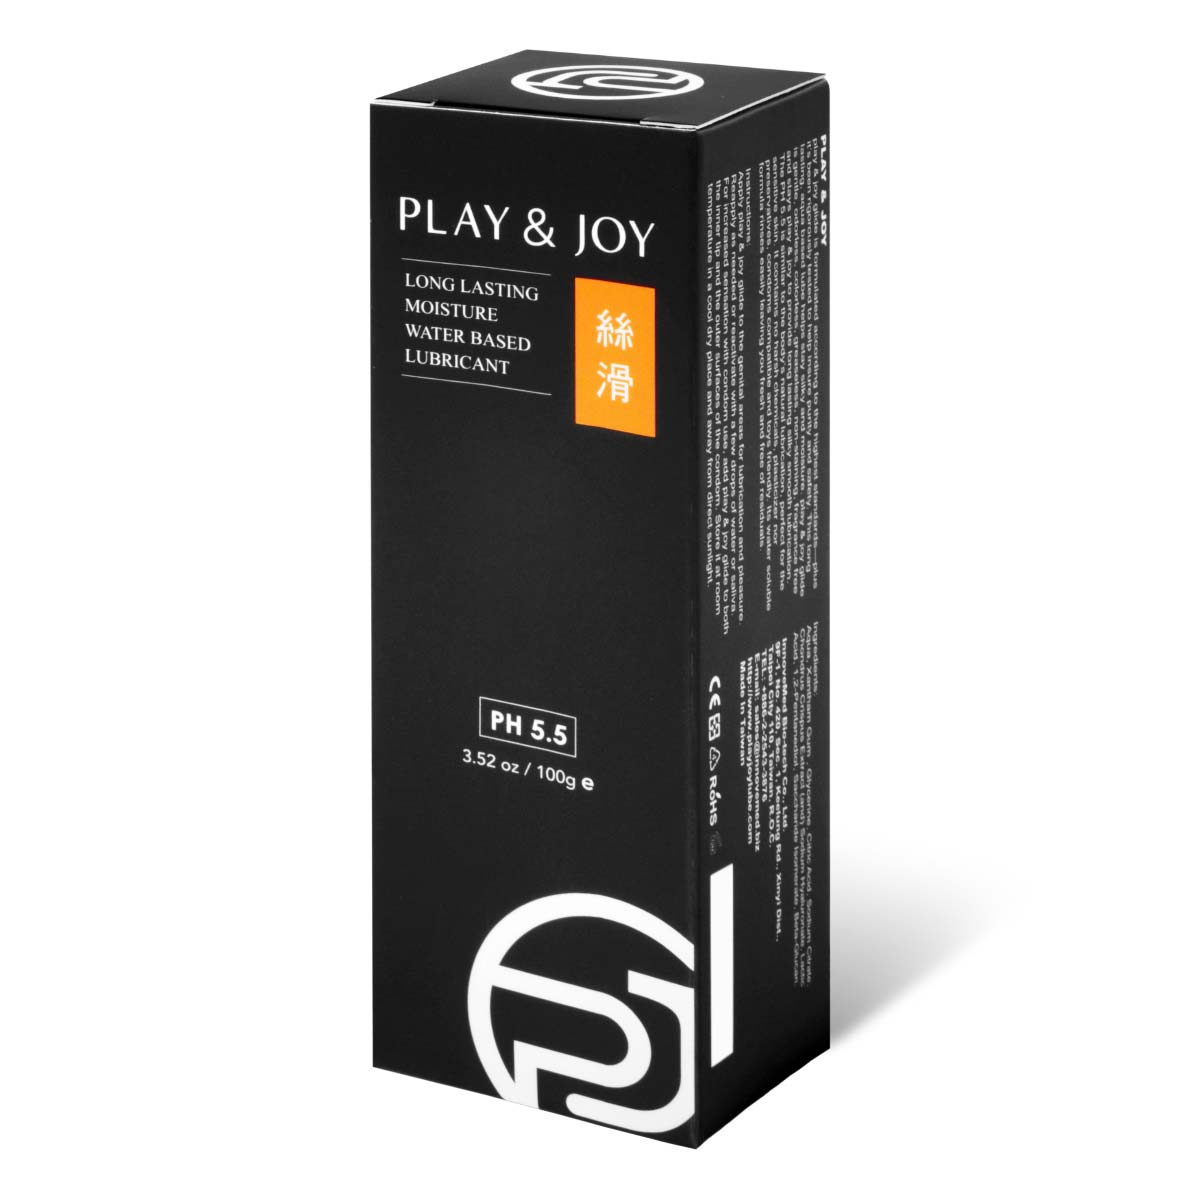 Play Joy Silky 100ml Water Based Lubricant Condom Sampson Store Durex